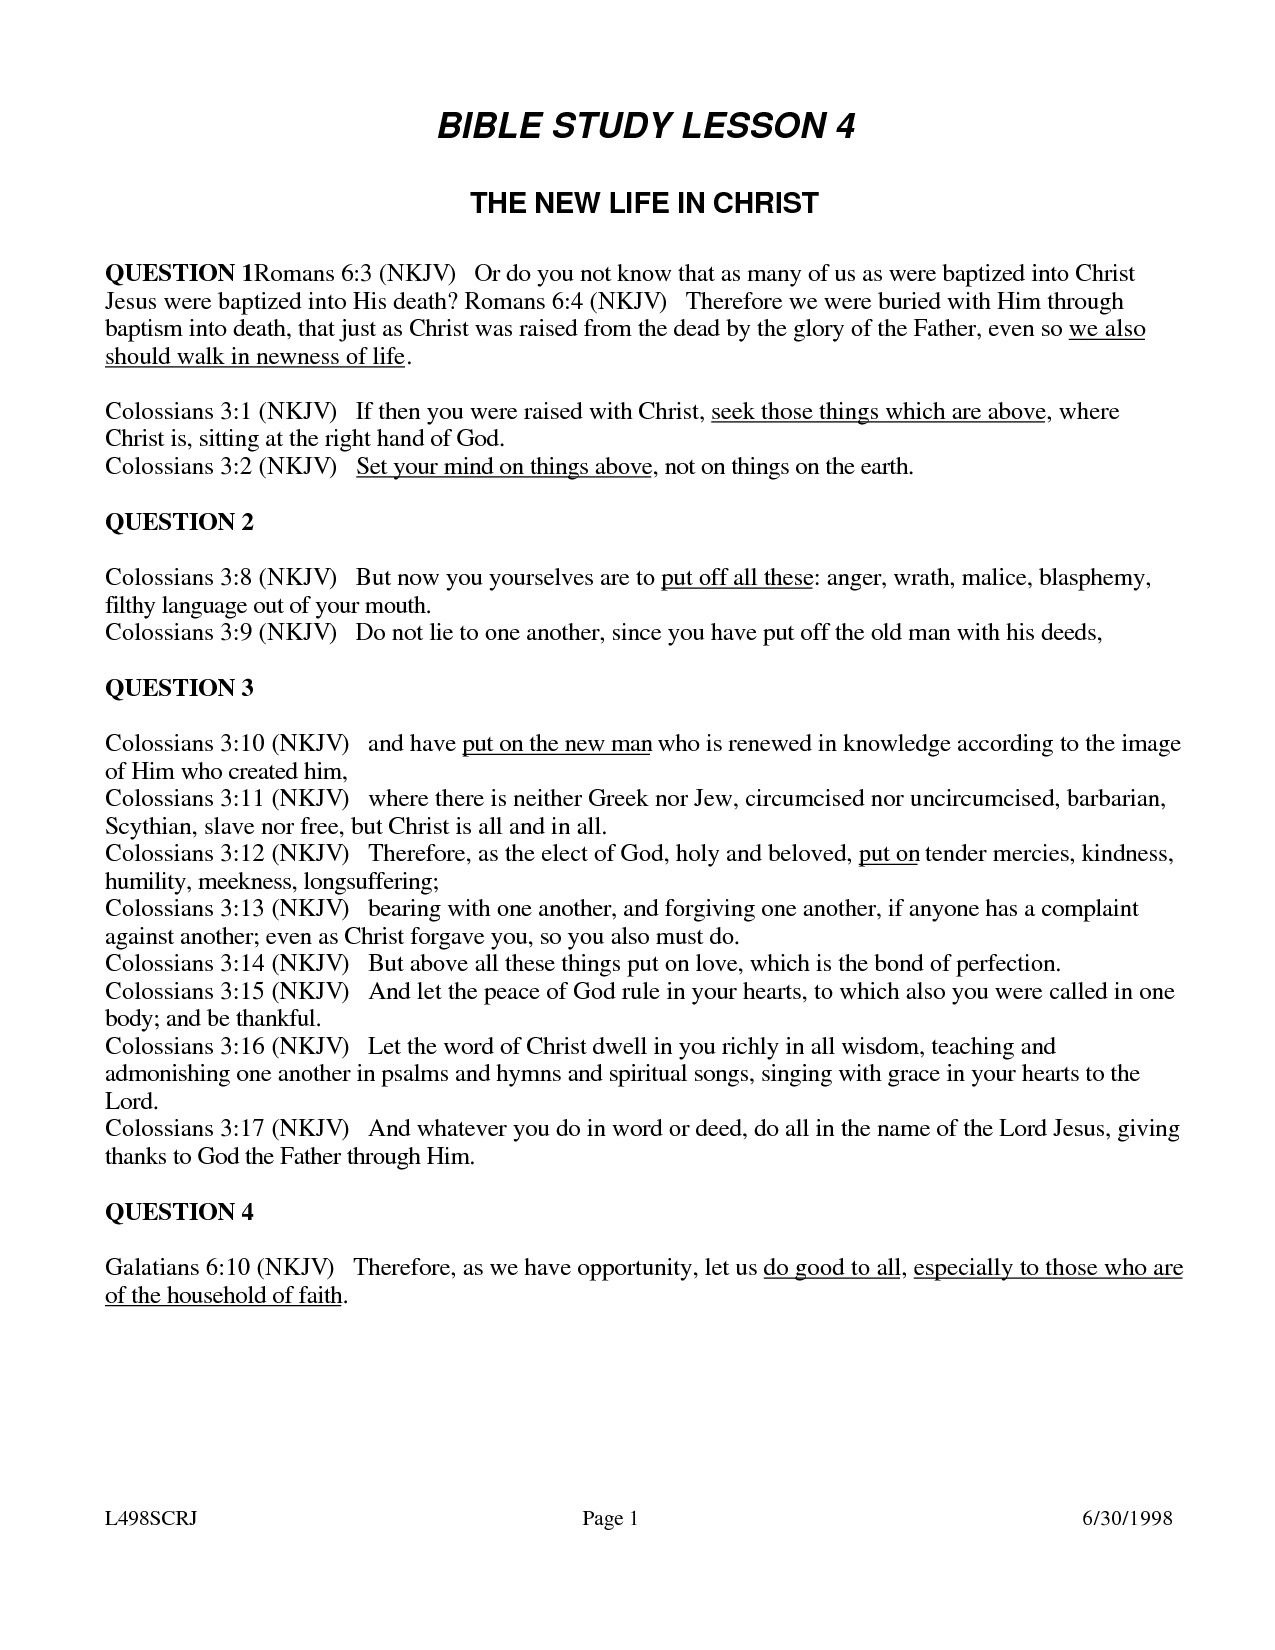 Weekly Bible Study Lesson - Free Printable Bible Study Lessons For Adults